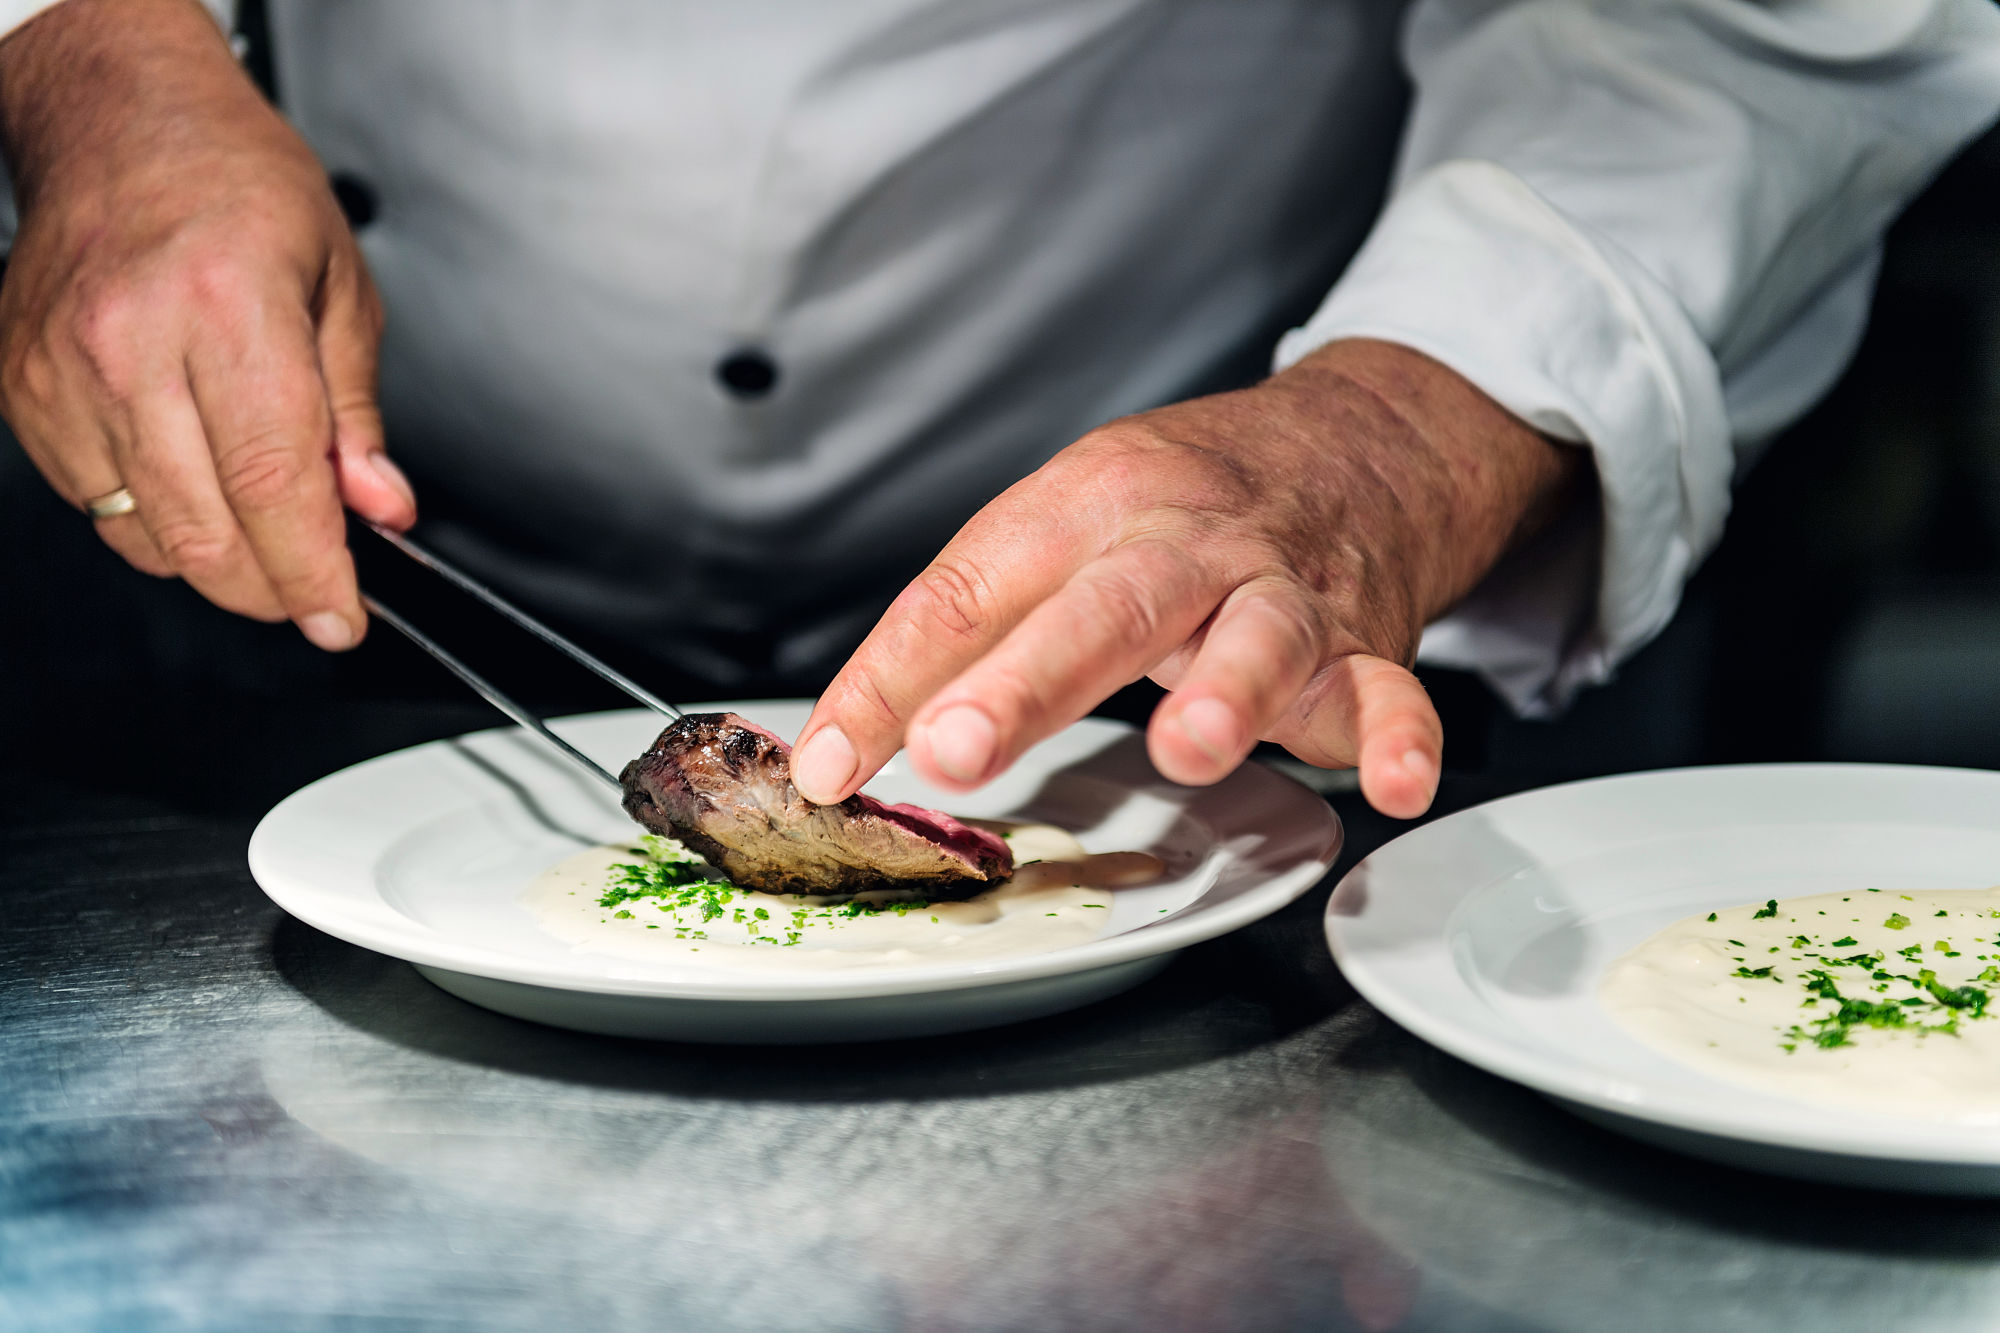 Swarovski Optik APPRECIATING THE GIFTS OF NATURE Robert Niederkofler preparing dish. from the wild to the table